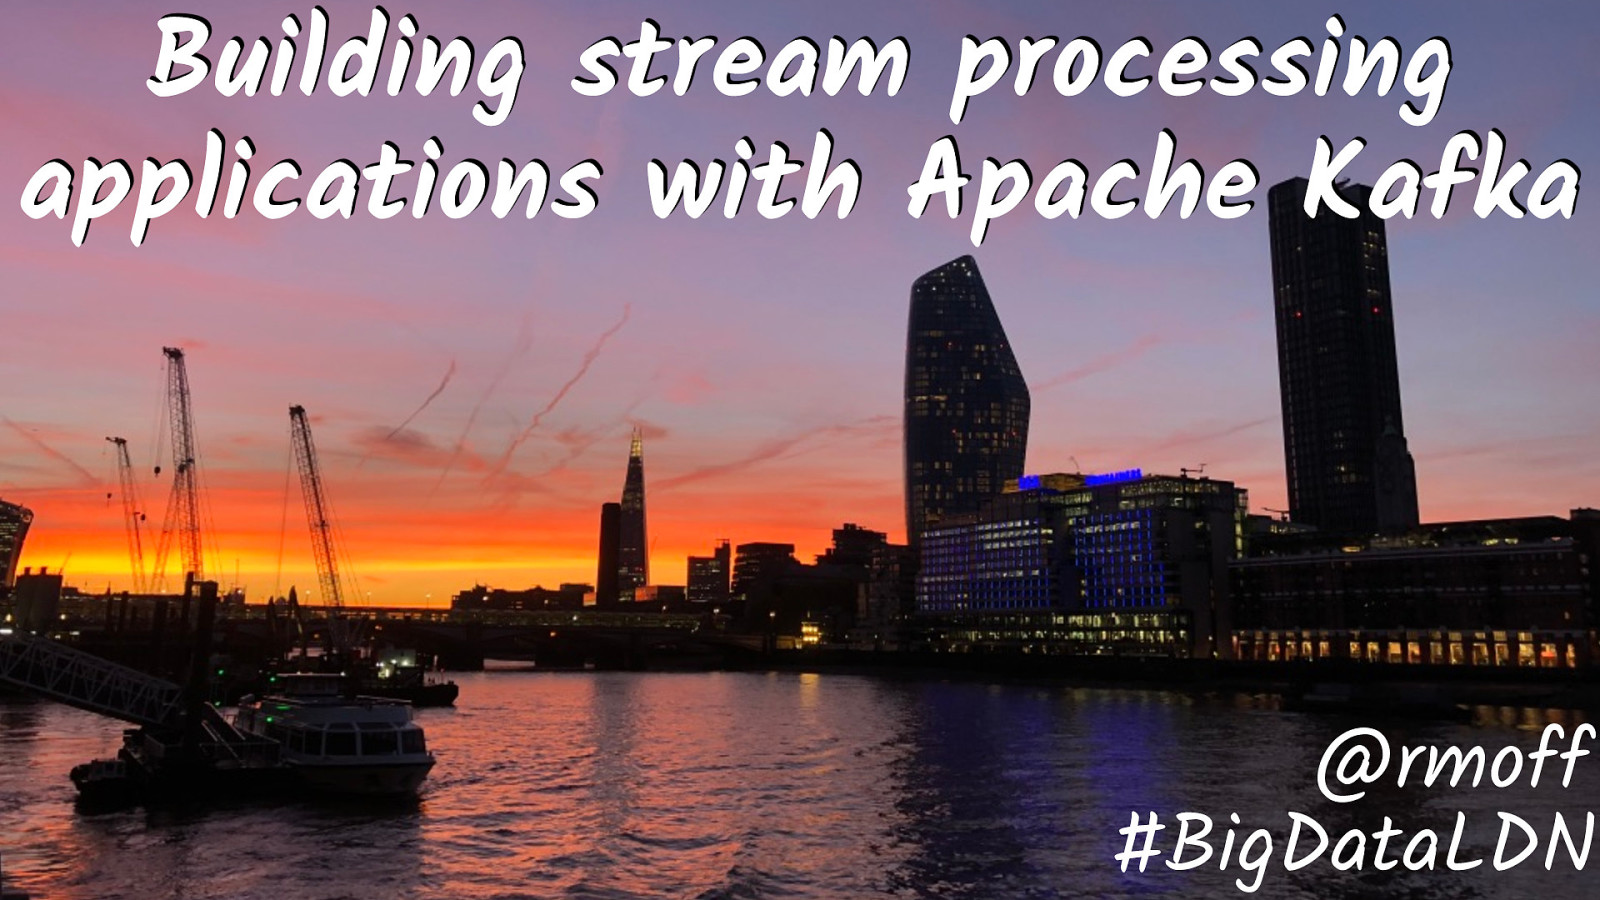 Building stream processing applications for Apache Kafka using KSQL